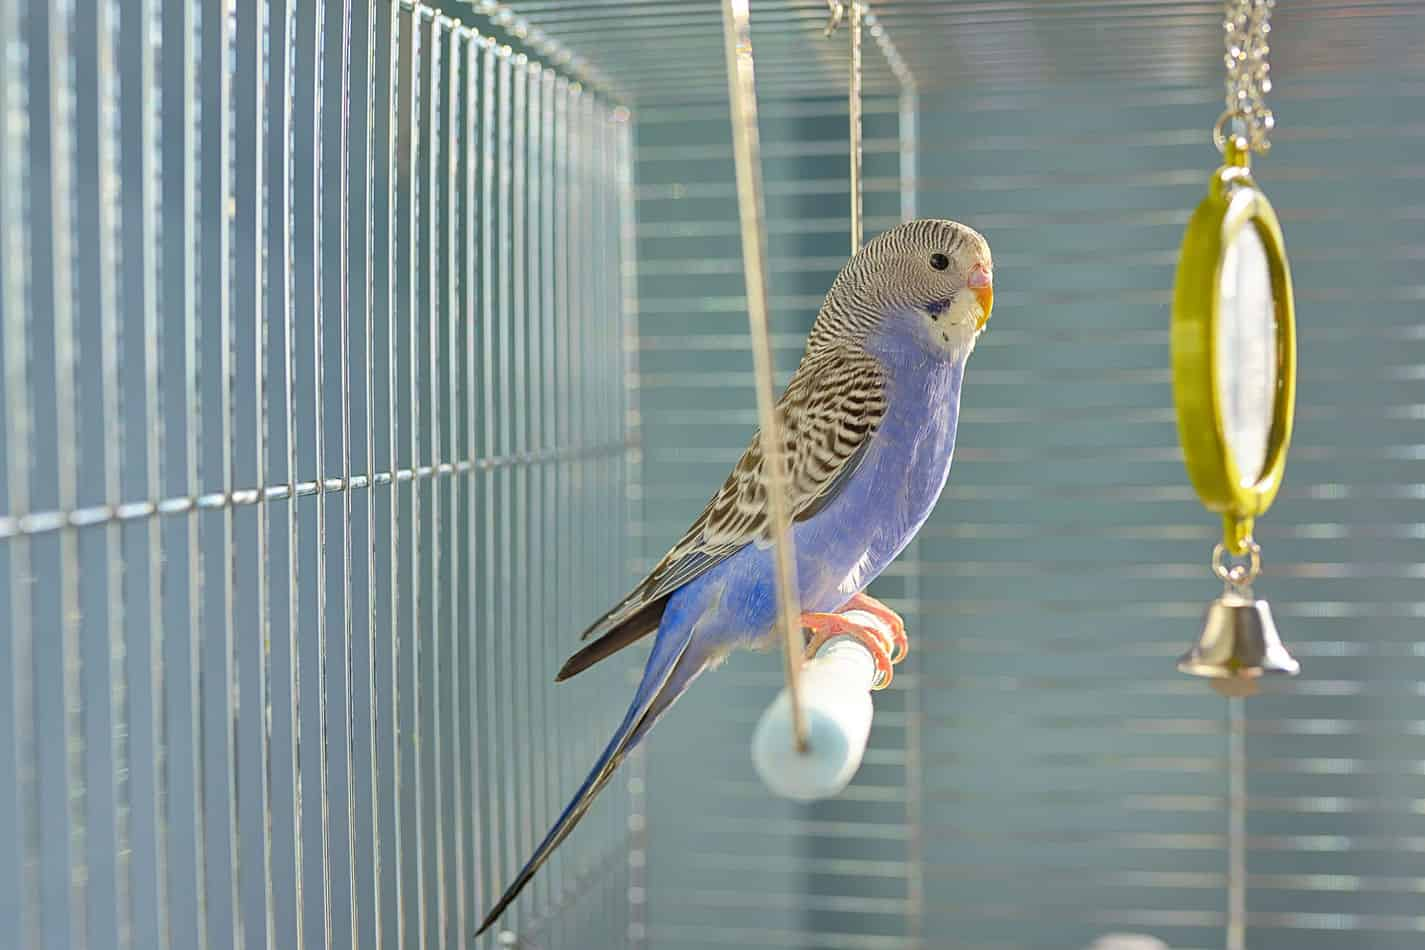 These are the Best Bird Cages for Parakeets in a Home